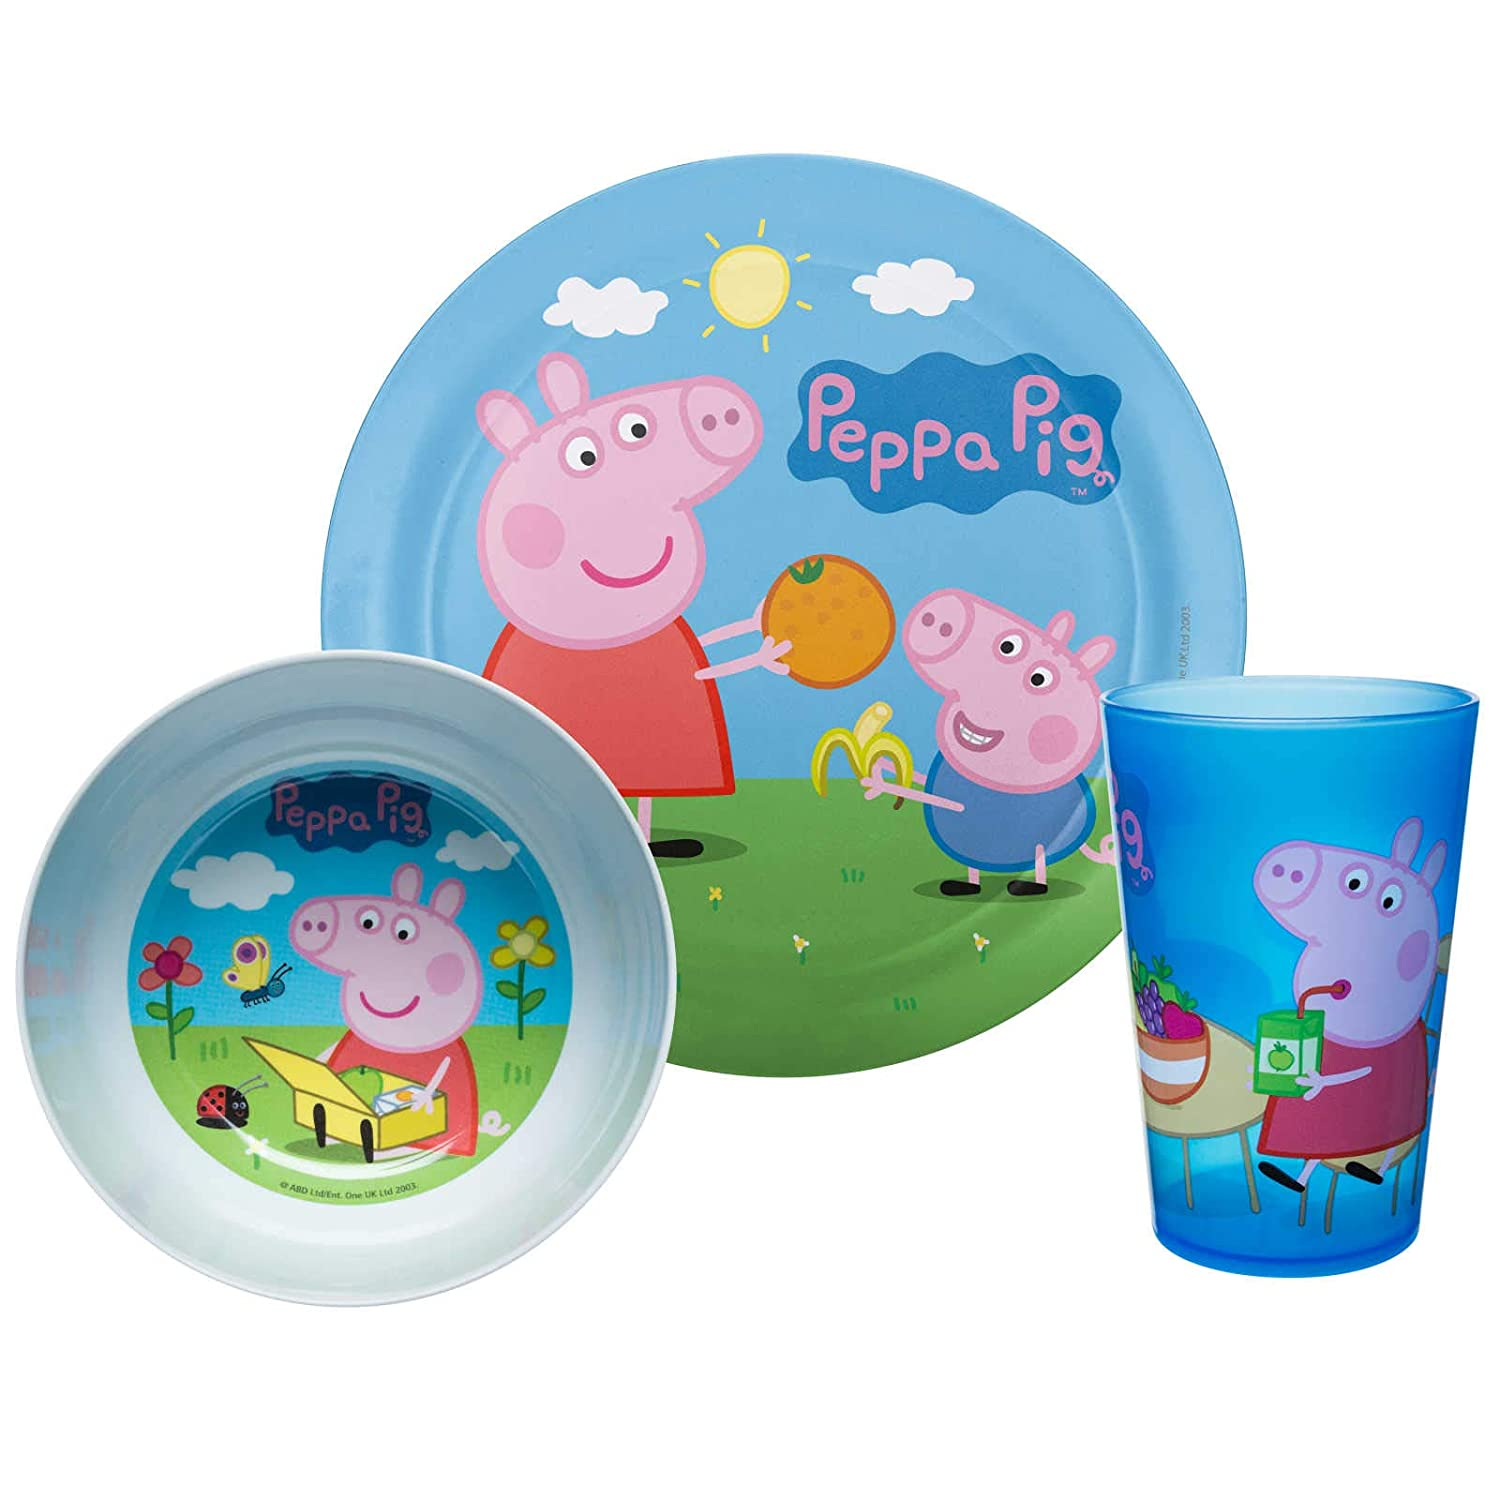 Nick Jr. PEPA-0391 Peppa Pig Melamine Plates 3-piece set by Zak Designs